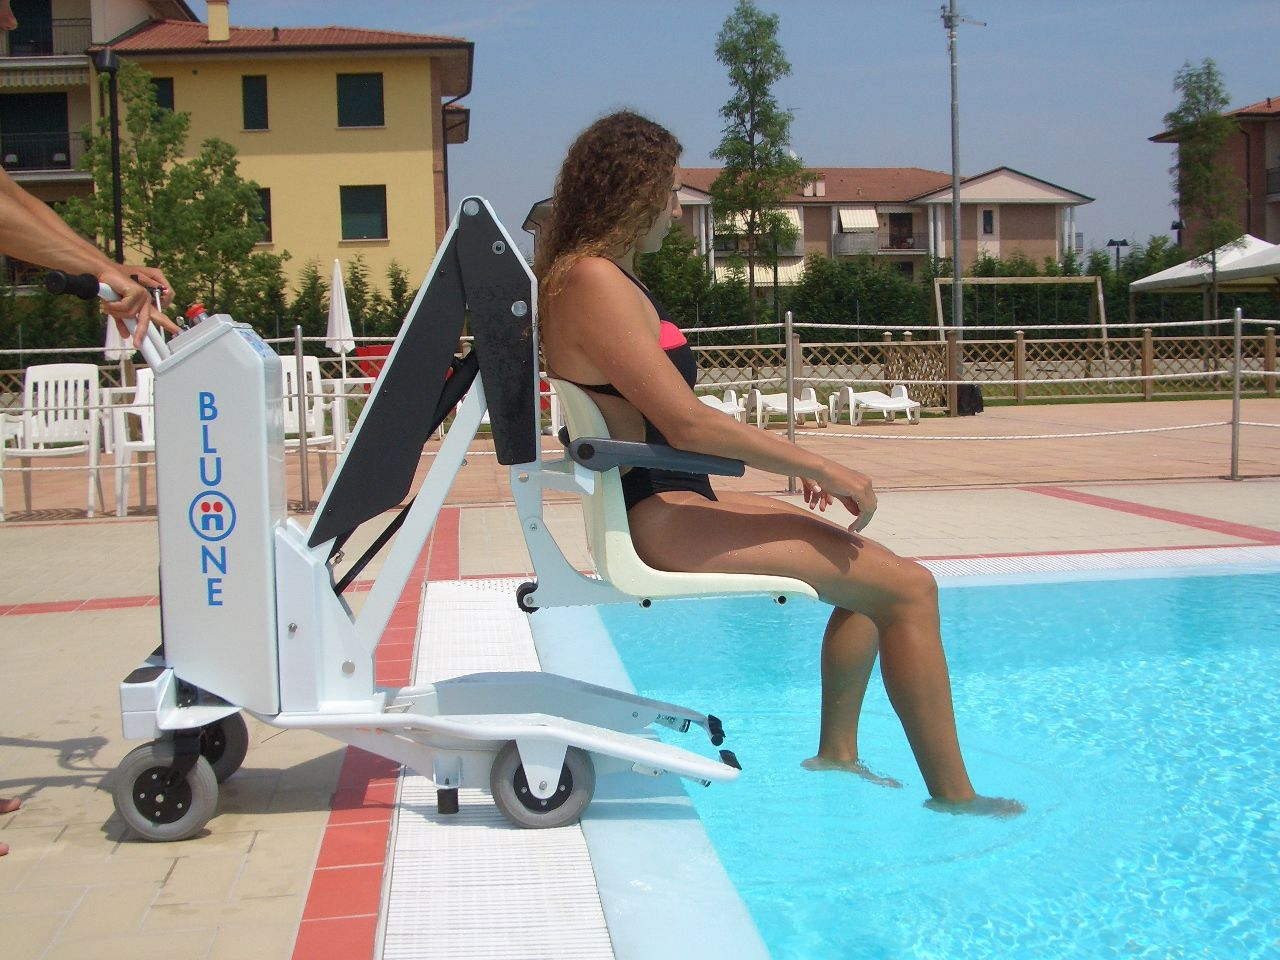 Mobility products for the disabled bluone pool lift - Swimming pool wheelchair lift law ...